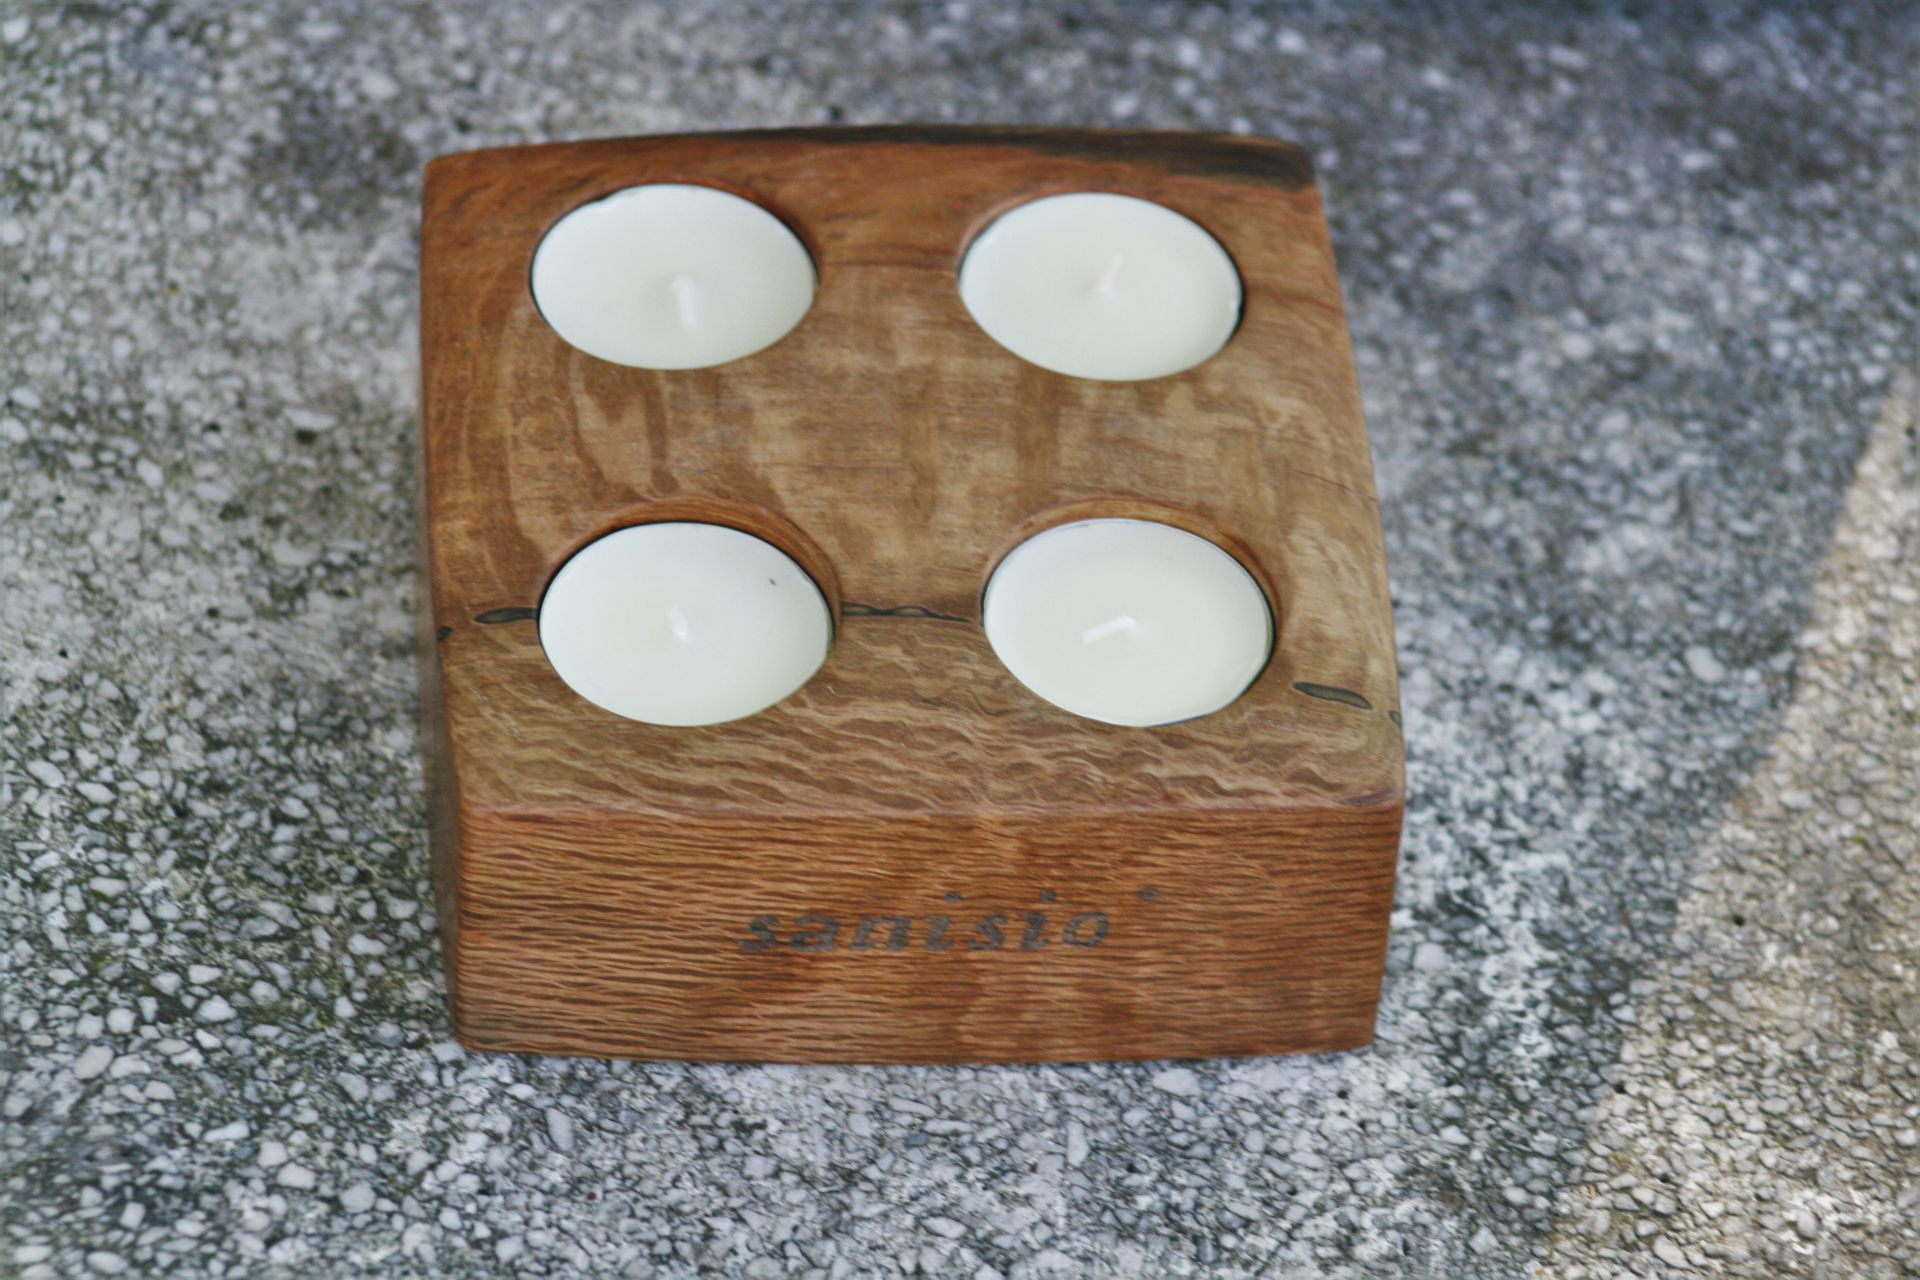 sacral wooden design sanisio unique handmade candle holder Advent black holm oak